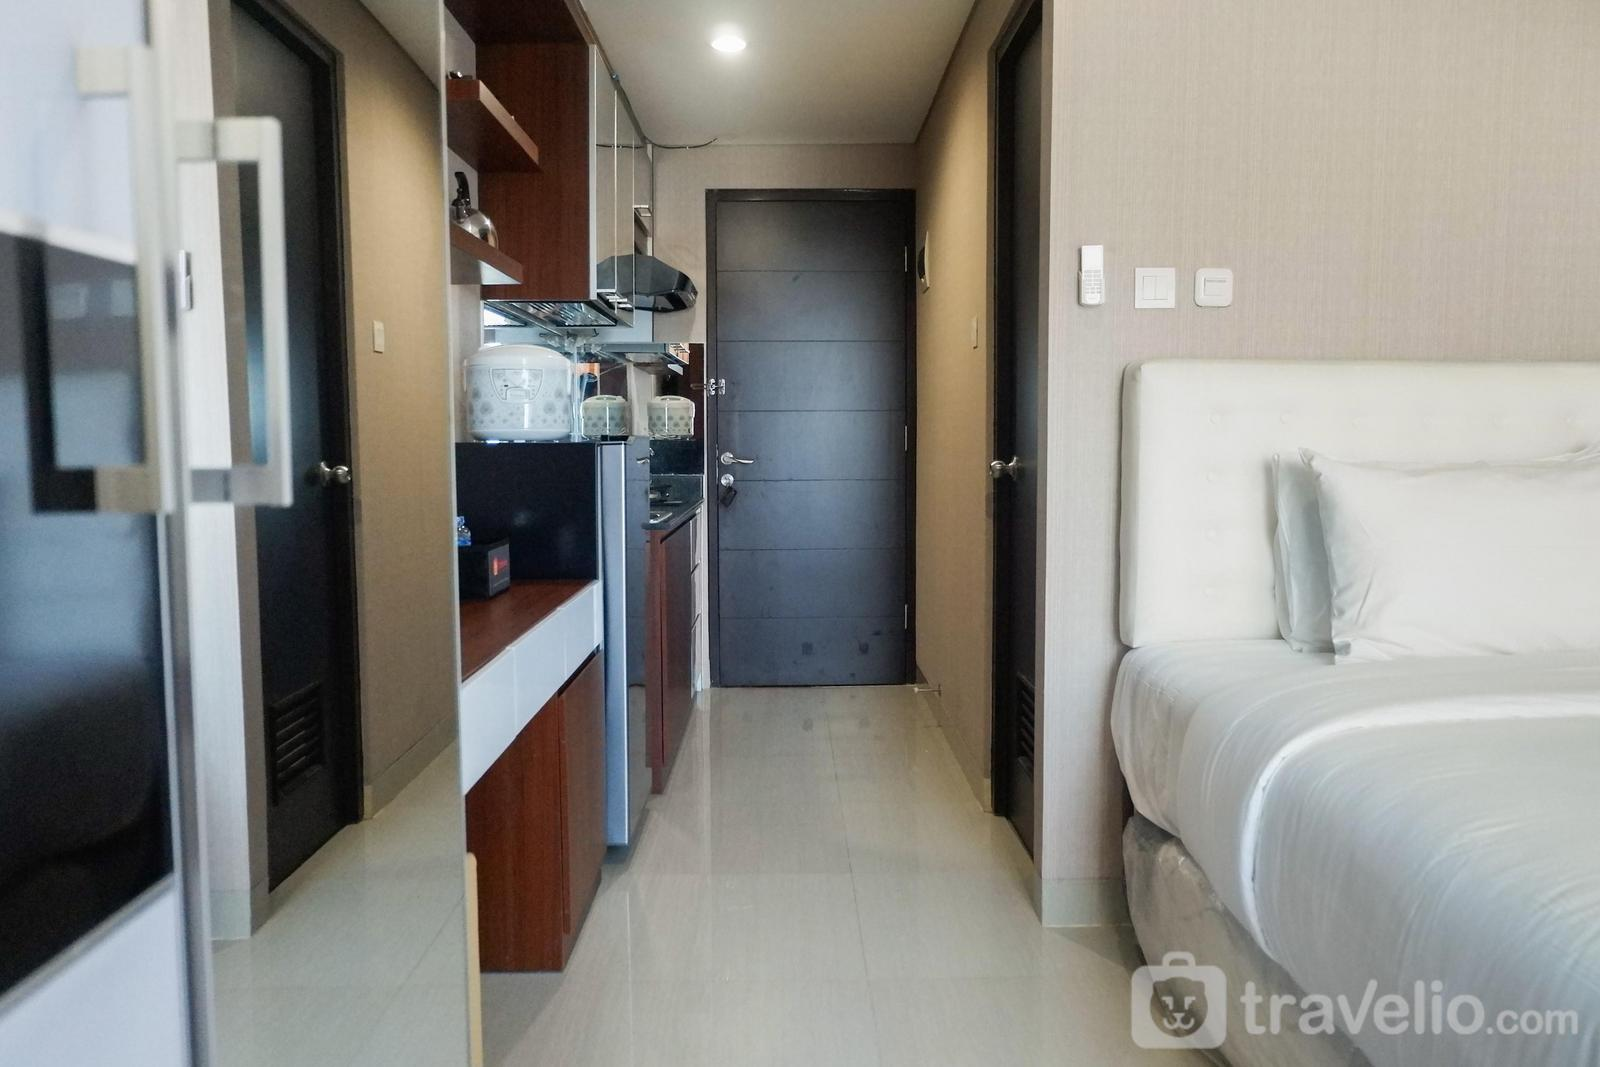 Tamansari Papilio - Modern Studio Apartment at Tamansari Papilio By Travelio